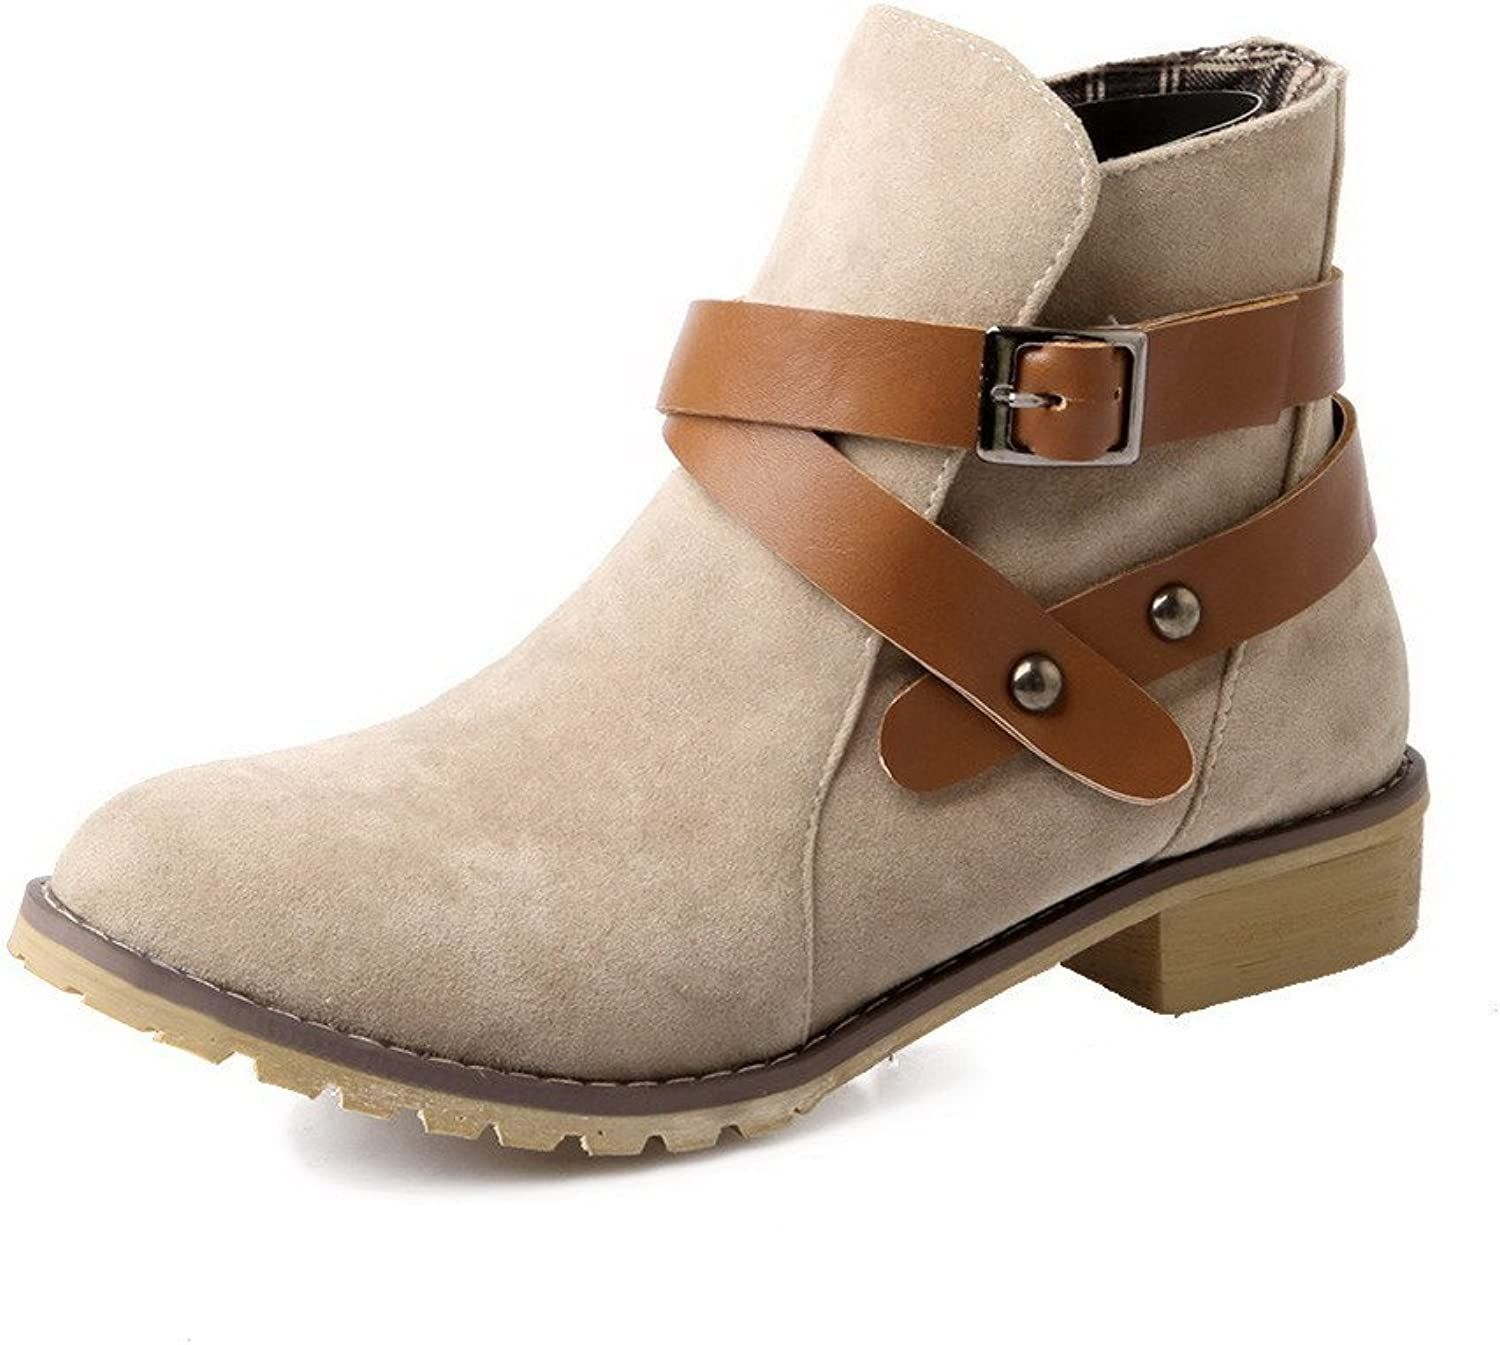 WeenFashion Women's Low-Heels Frosted Low-Top Solid Buckle Boots